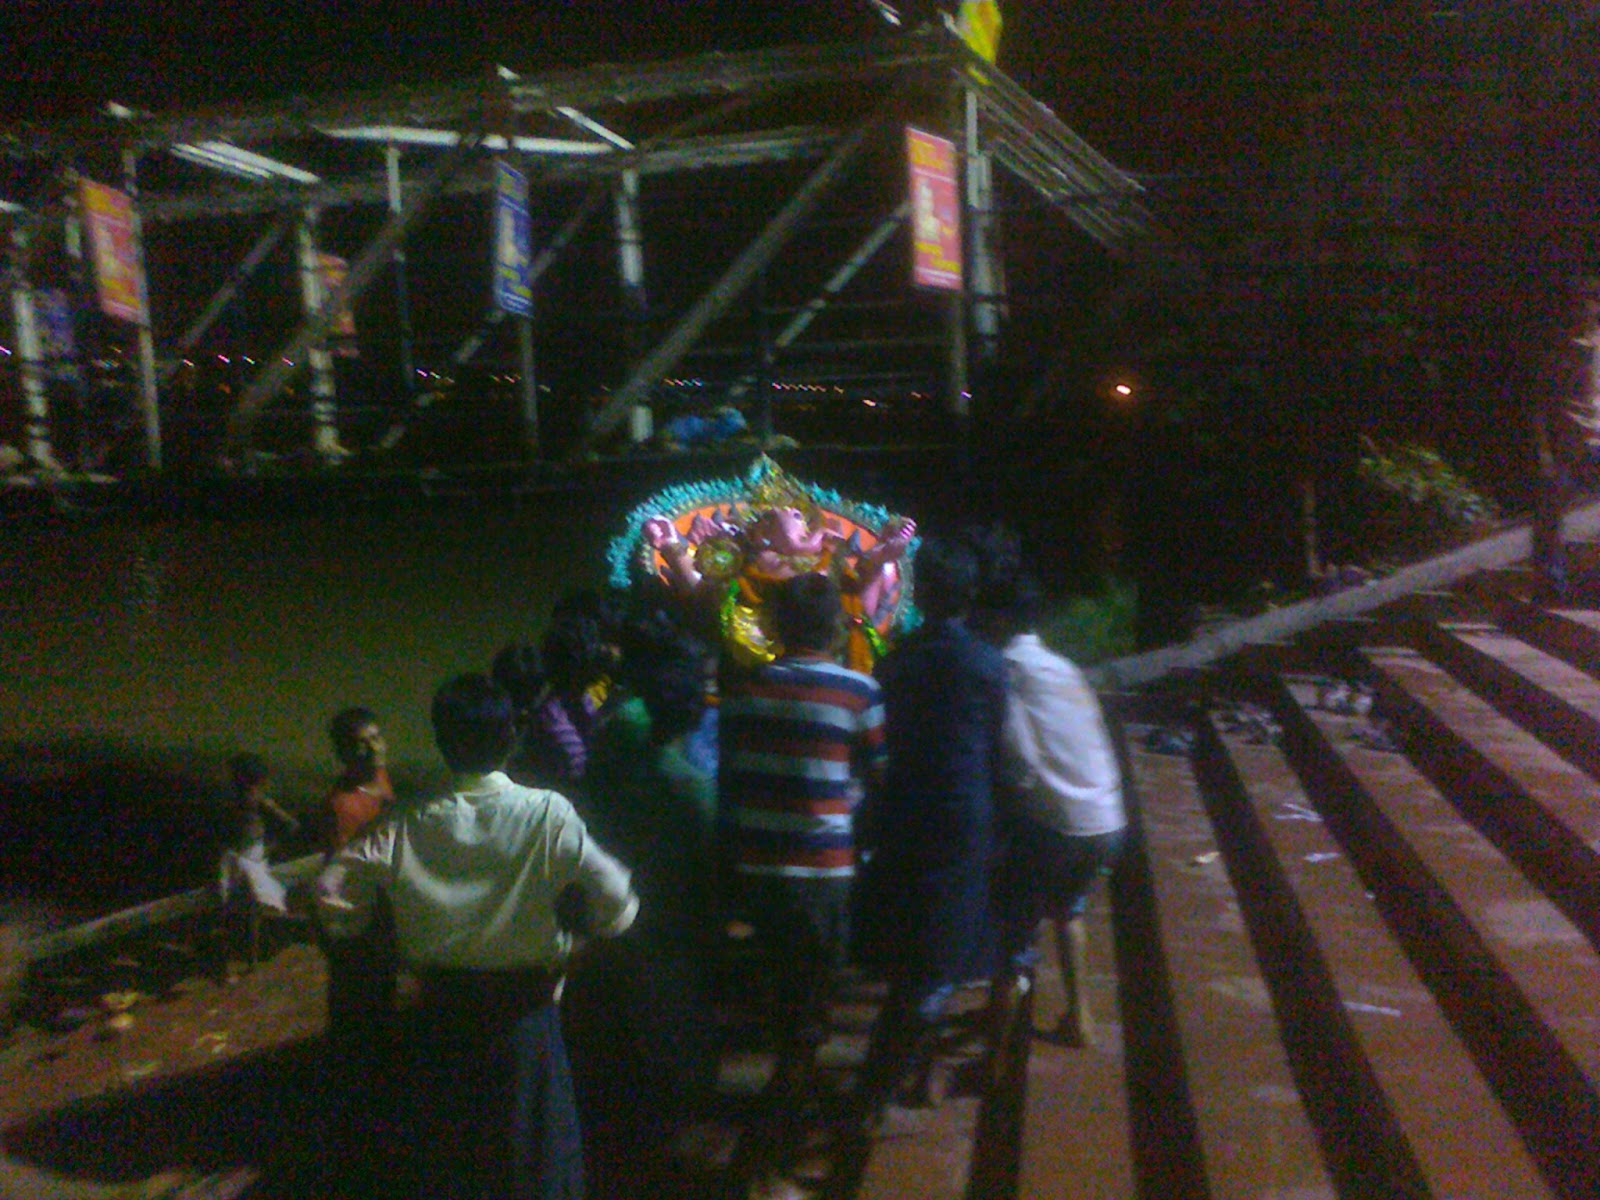 Lord Ganesha puja idol immersion visarjan rituals performed at river ganga ghat howrah